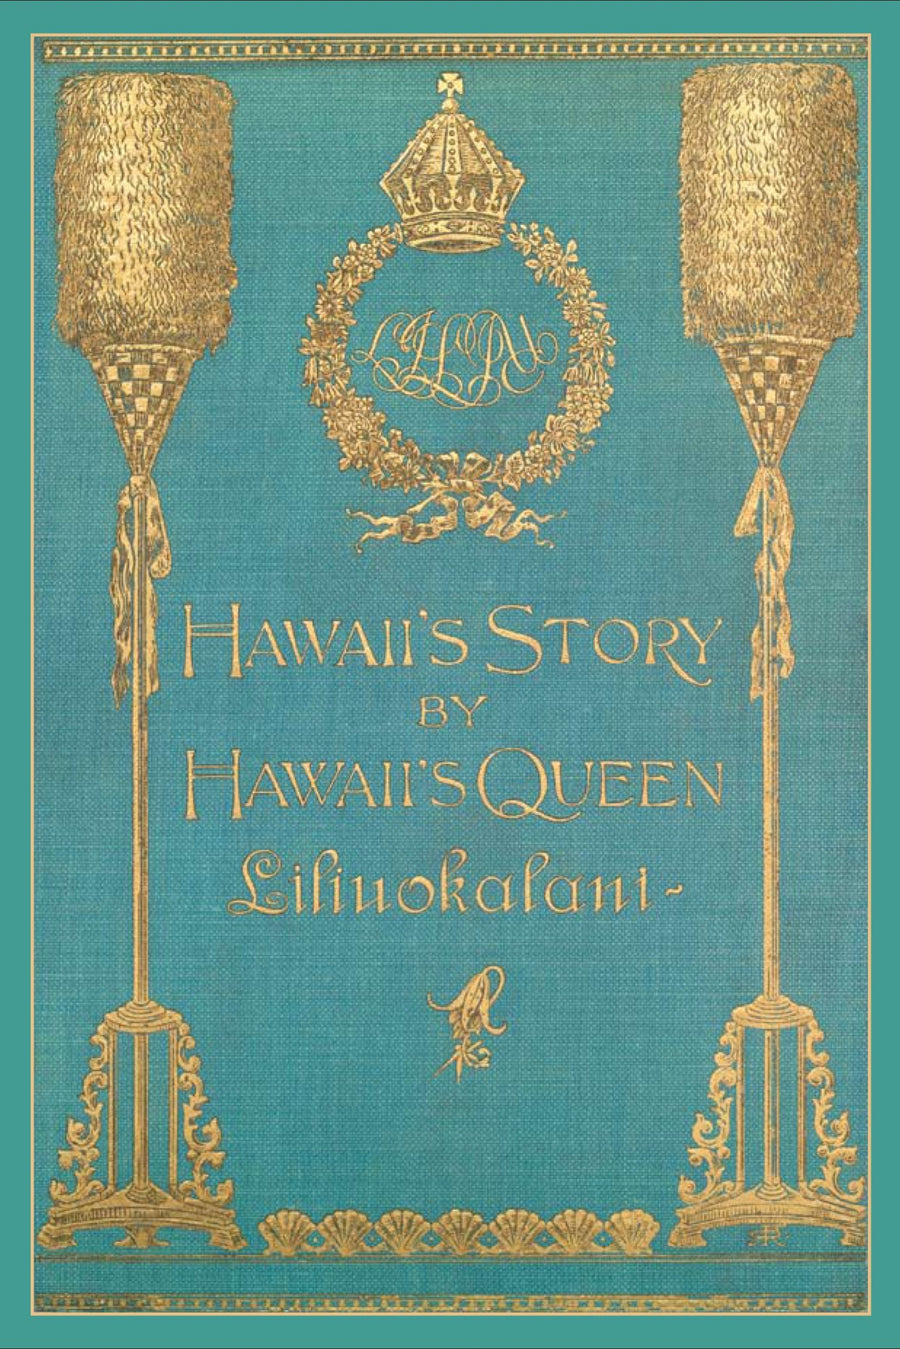 Hawaiʻi's Story by Hawaiʻi's Queen